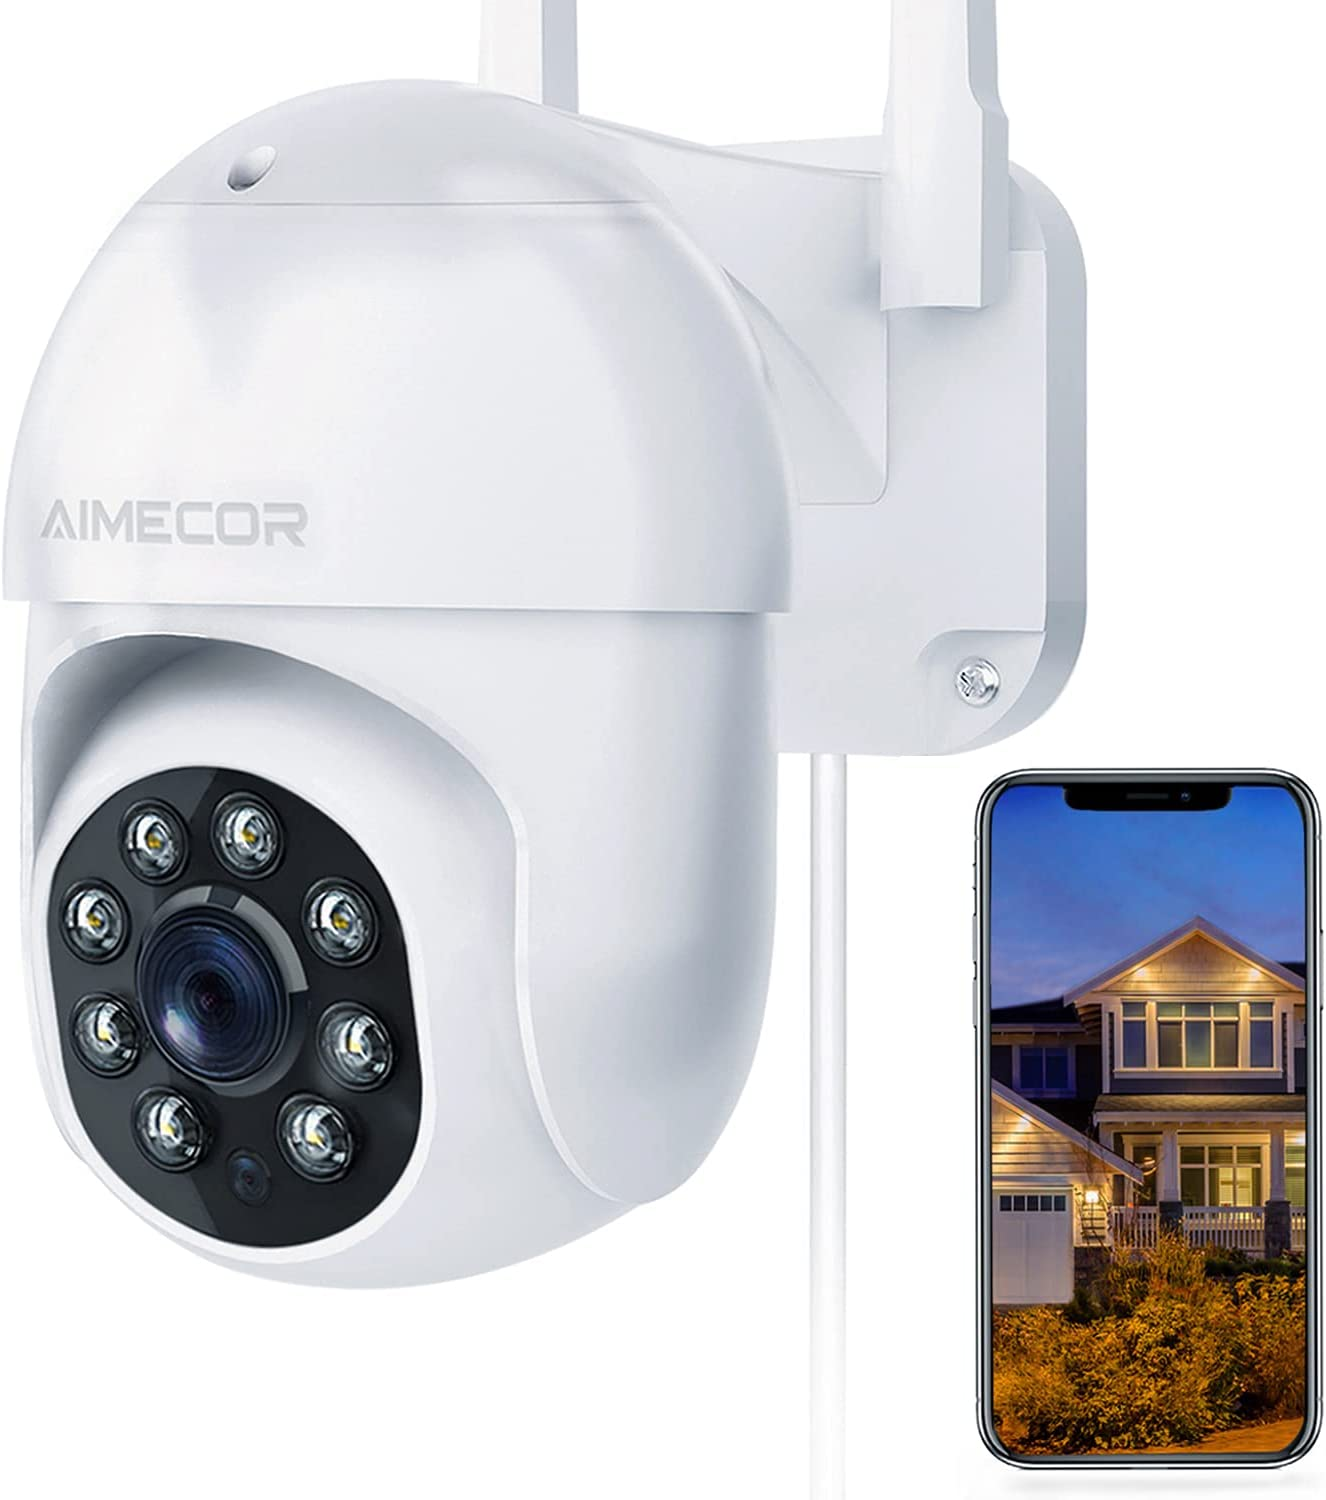 Security Camera Outdoor, FHD 1080P Pan/Tilt 2.4G WiFi Home Surveillance Camera with Night Vision 2-Way Audio Cloud Motion Detection Activity Alert IP66 Waterproof Cloud Alexa - iOS, Android